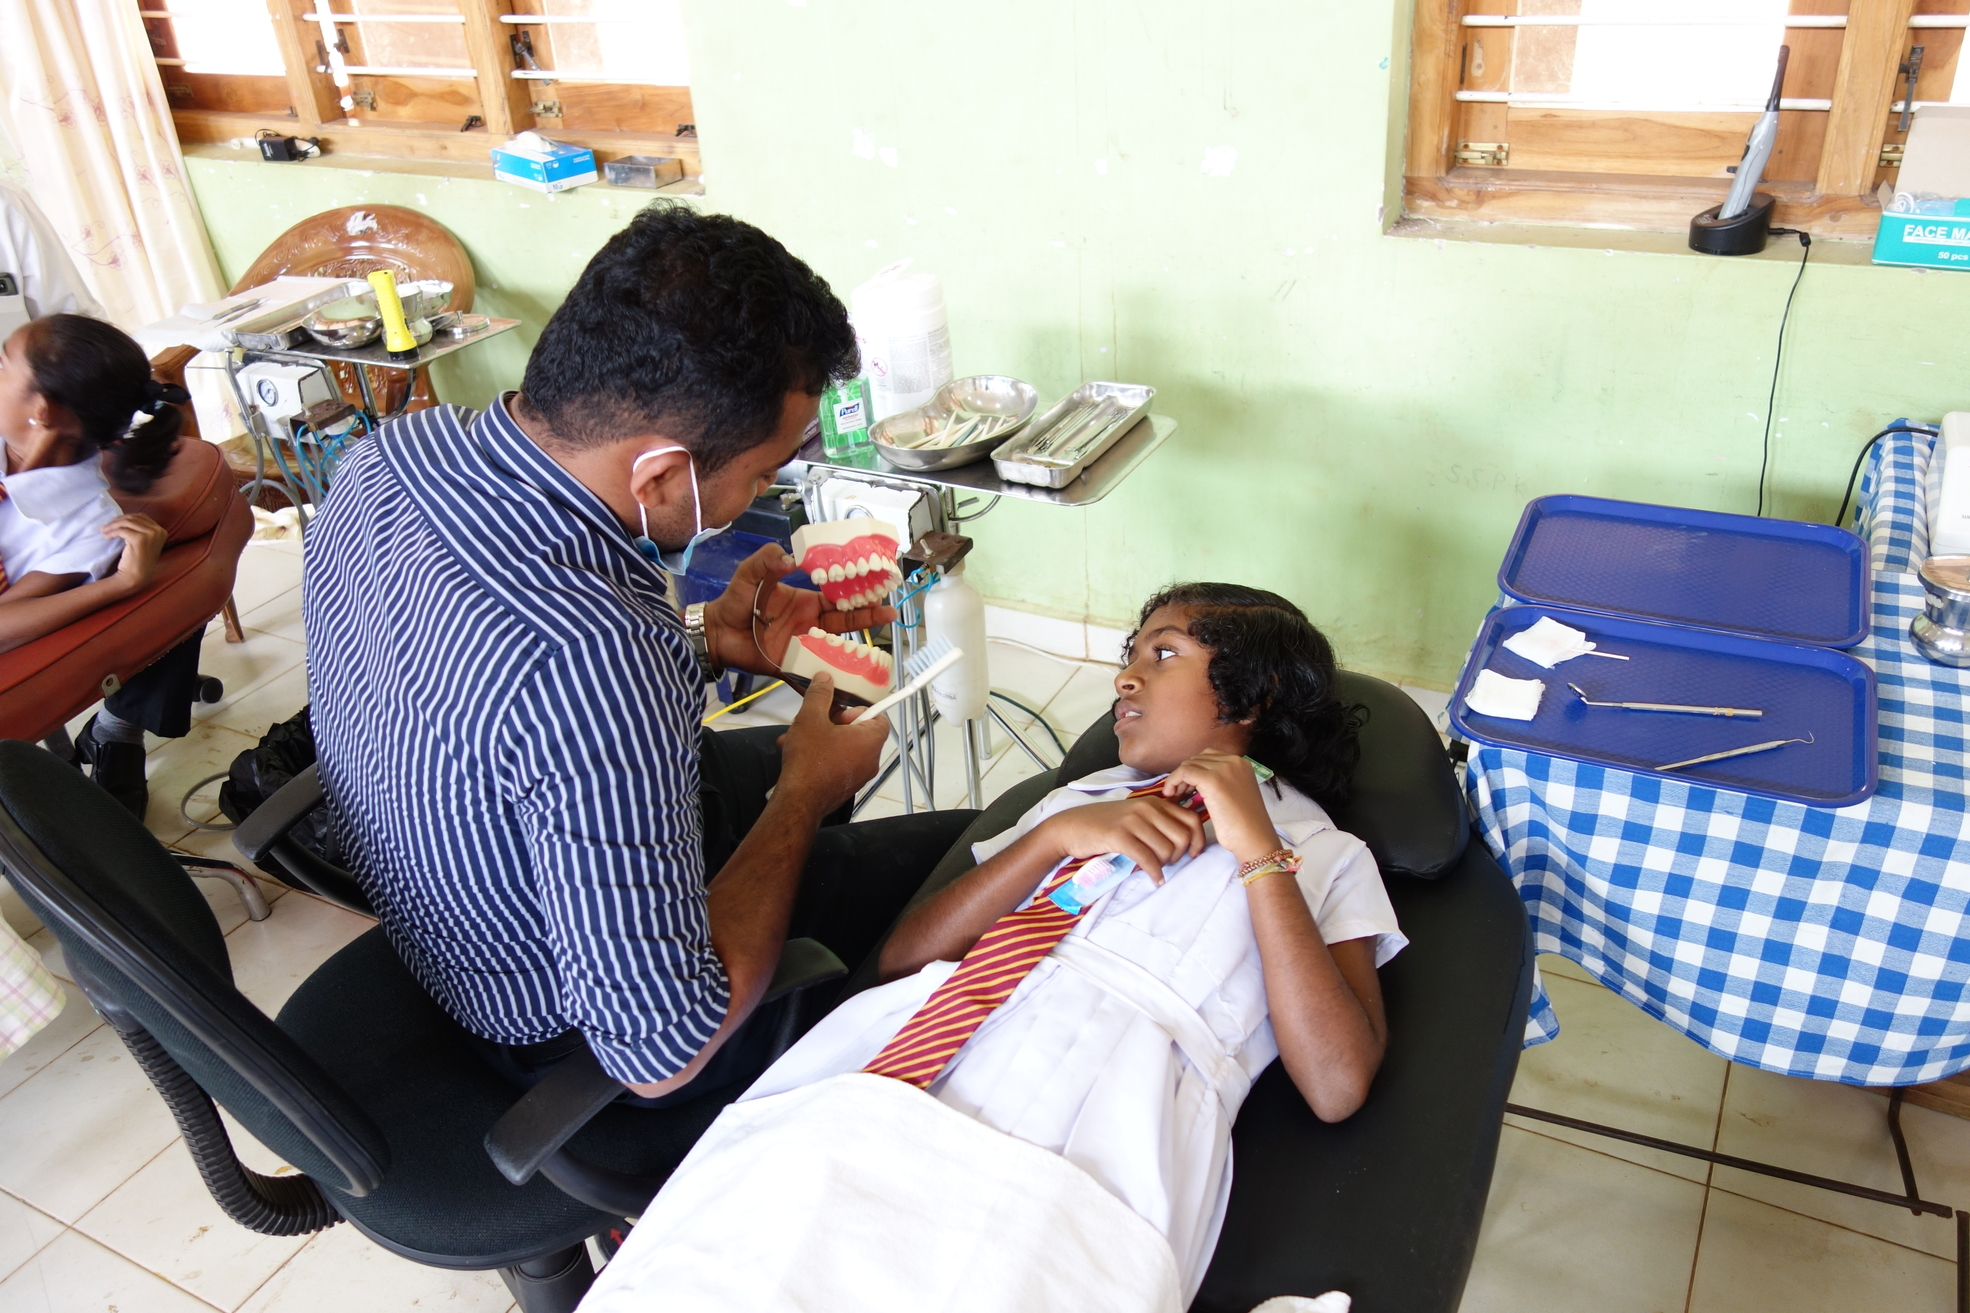 Dental Care International (DCI) Mobile dental care to provide free dental care to children in Sri Lanka. Dentists, hygienists, dental assistants